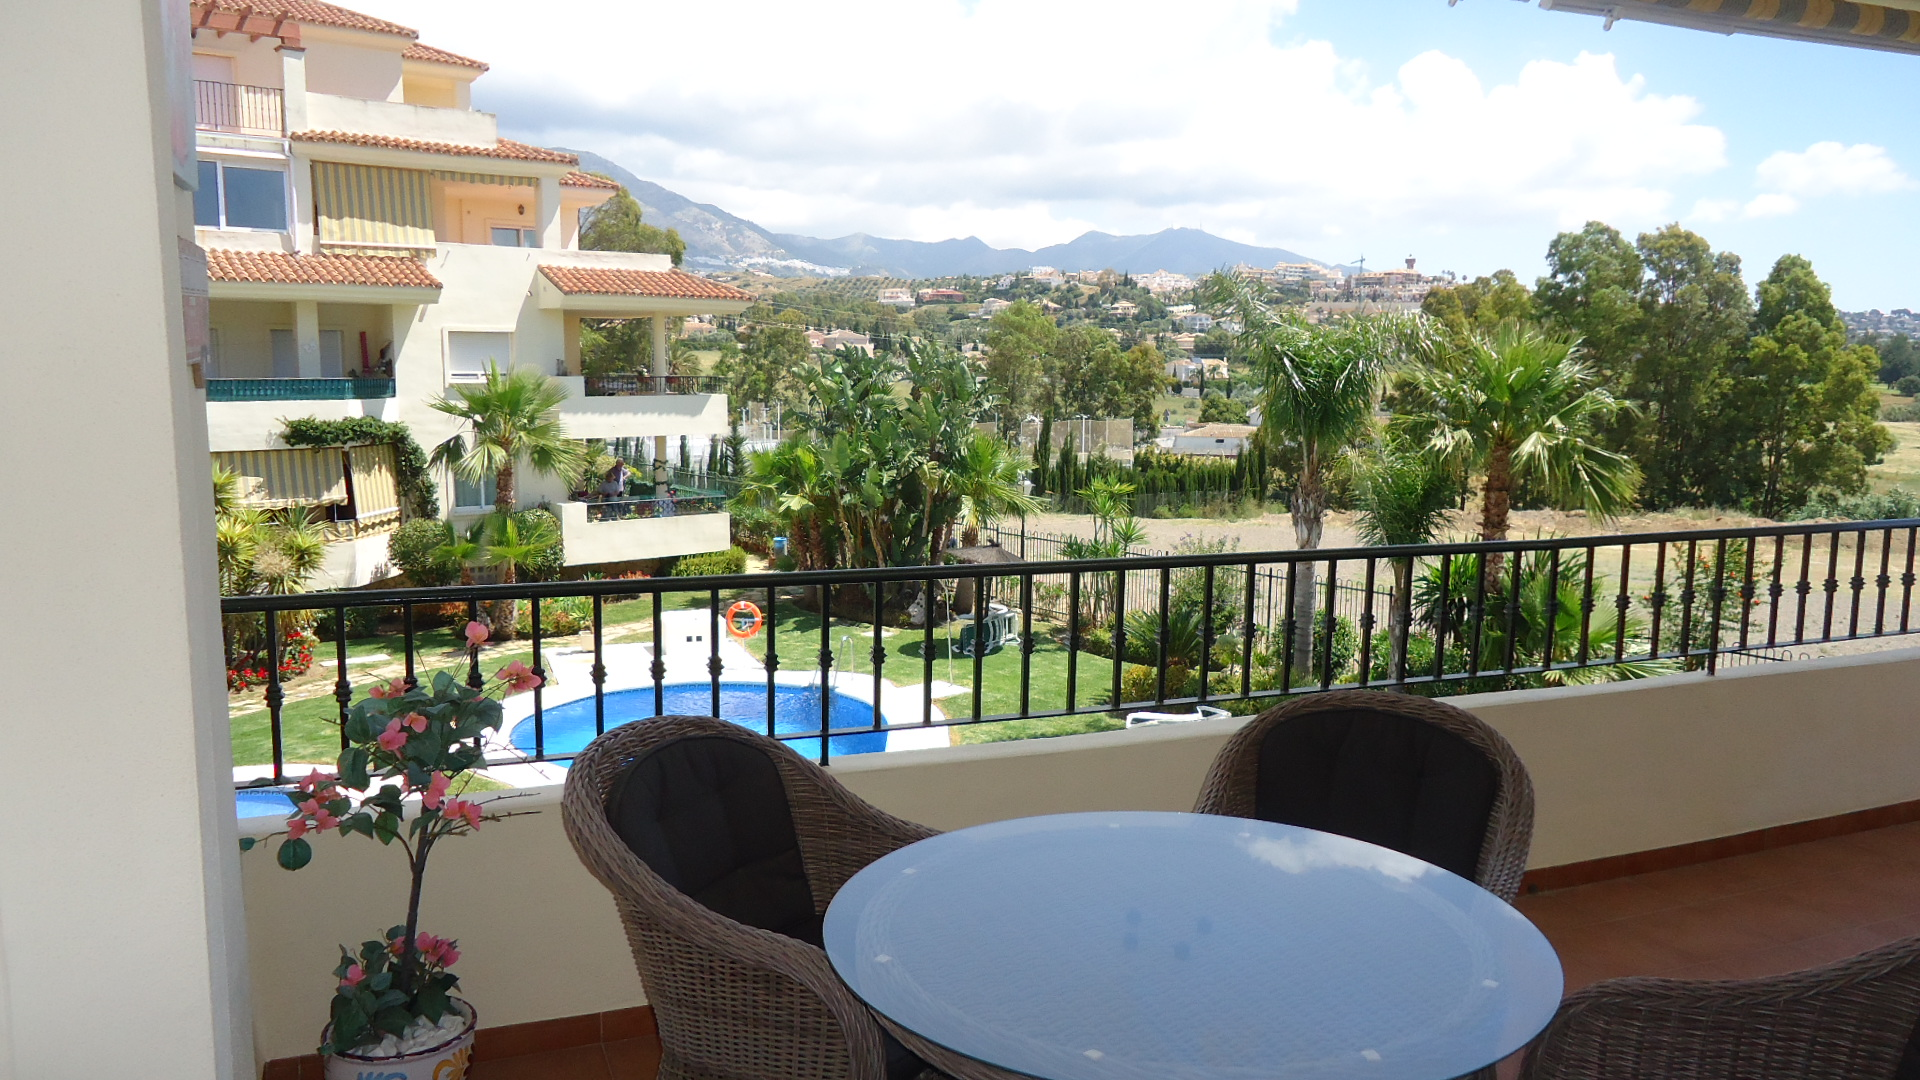 REF.: 90518 – La Cala Hills impecable piso 2 dorm. 2 baños – La Cala Hills impeccable flat 2 bedrooms 2 baths